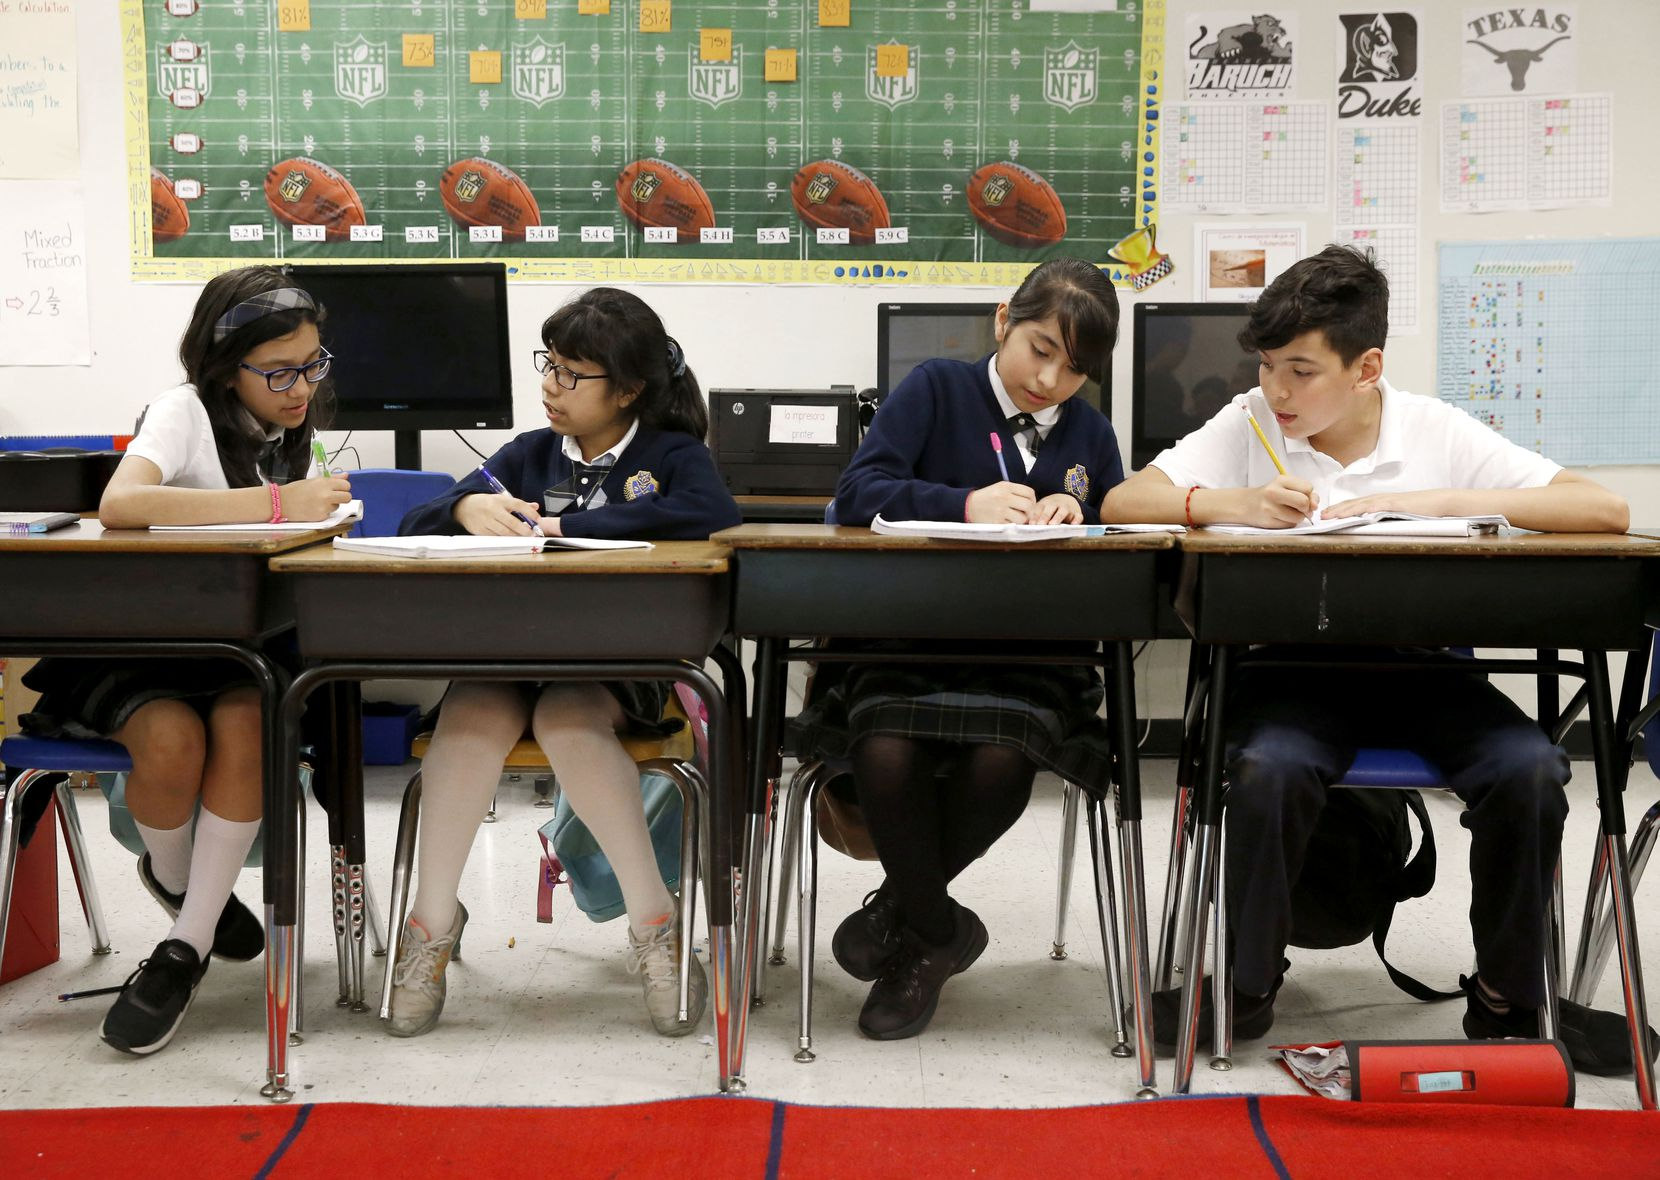 Daniela Hernandez, (from left) Beatriz Ramirez, Briana Morales and Juan Pablo Ortiz work on math problems during class at Annie Webb Blanton Elementary in Dallas on May 17, 2018.